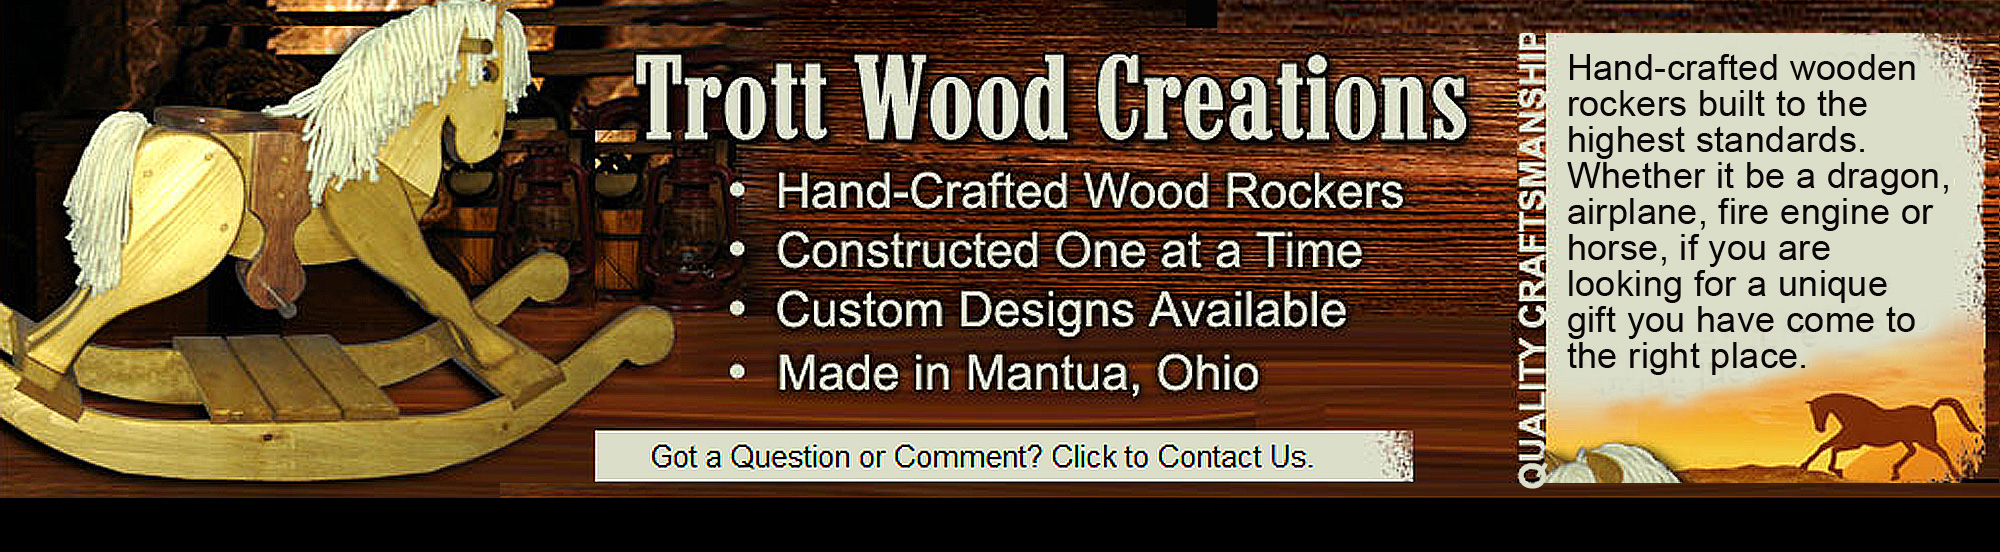 Trottwood Creations |